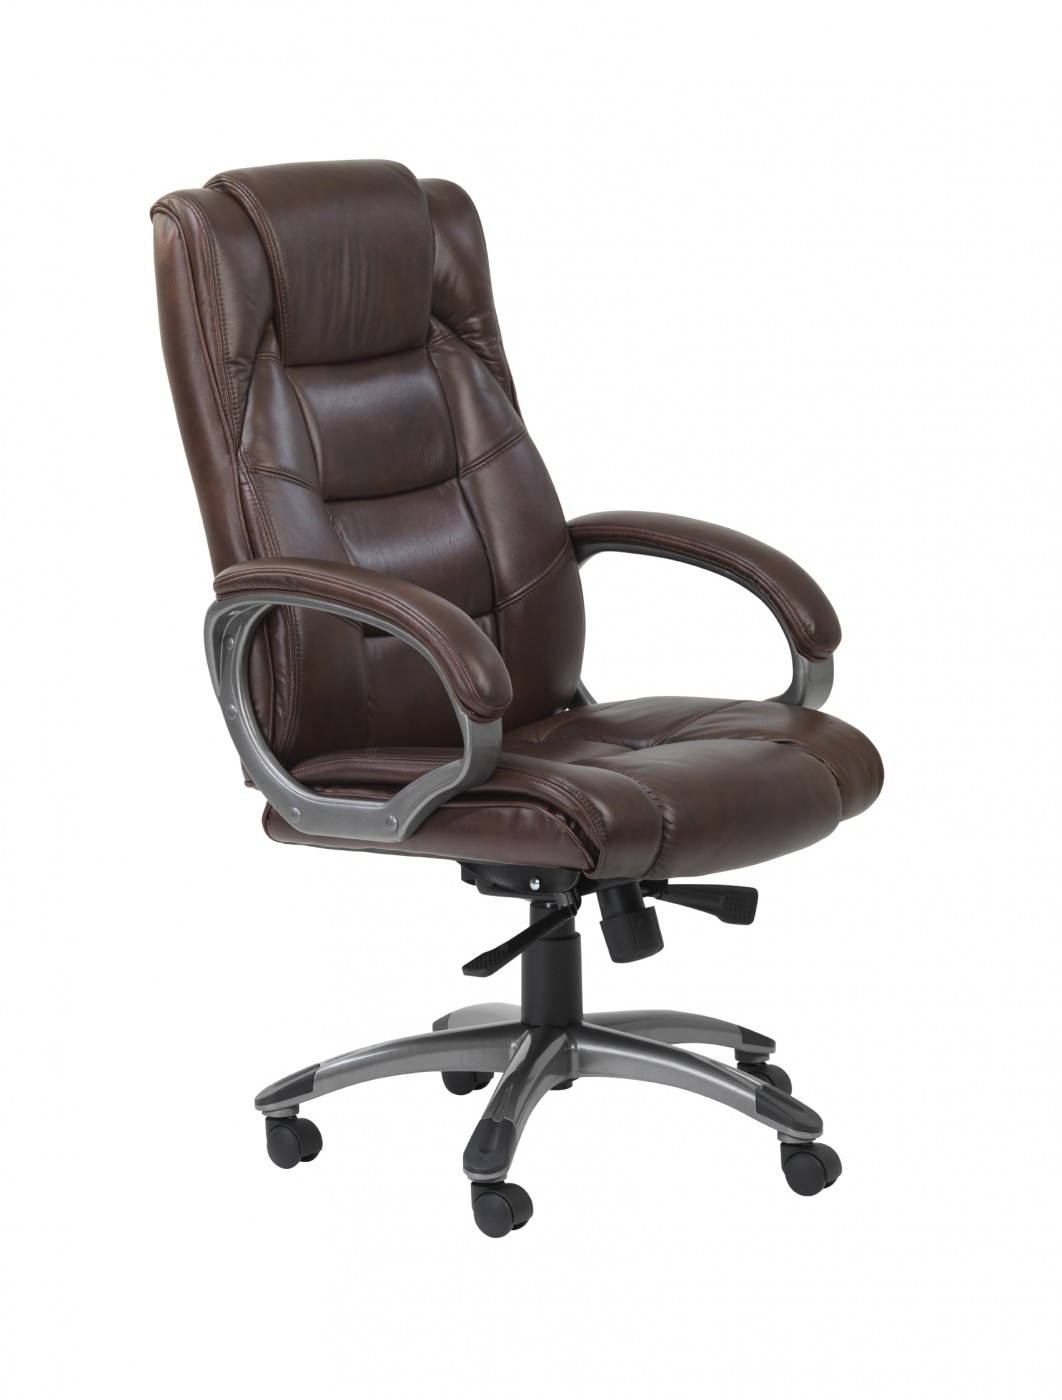 Executive Chair Executive Chair Aoc6322 L 121 Office Furniture